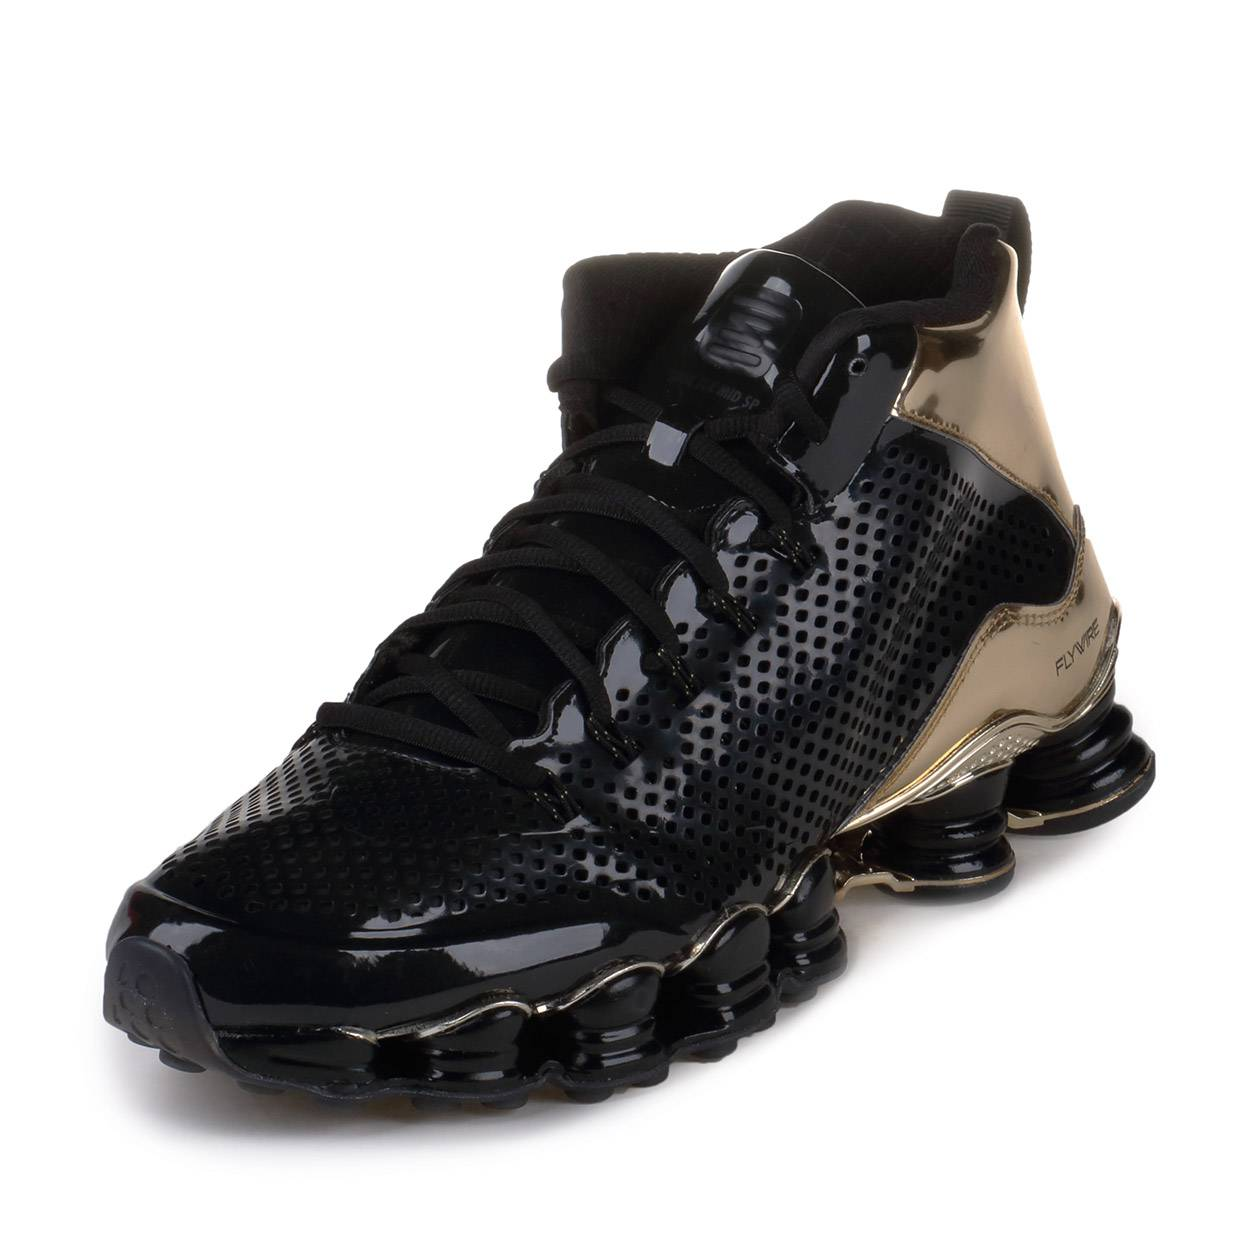 Nike Mens Shox TLX Mid SP Black Black Metallic Gold 677737 002 | eBay